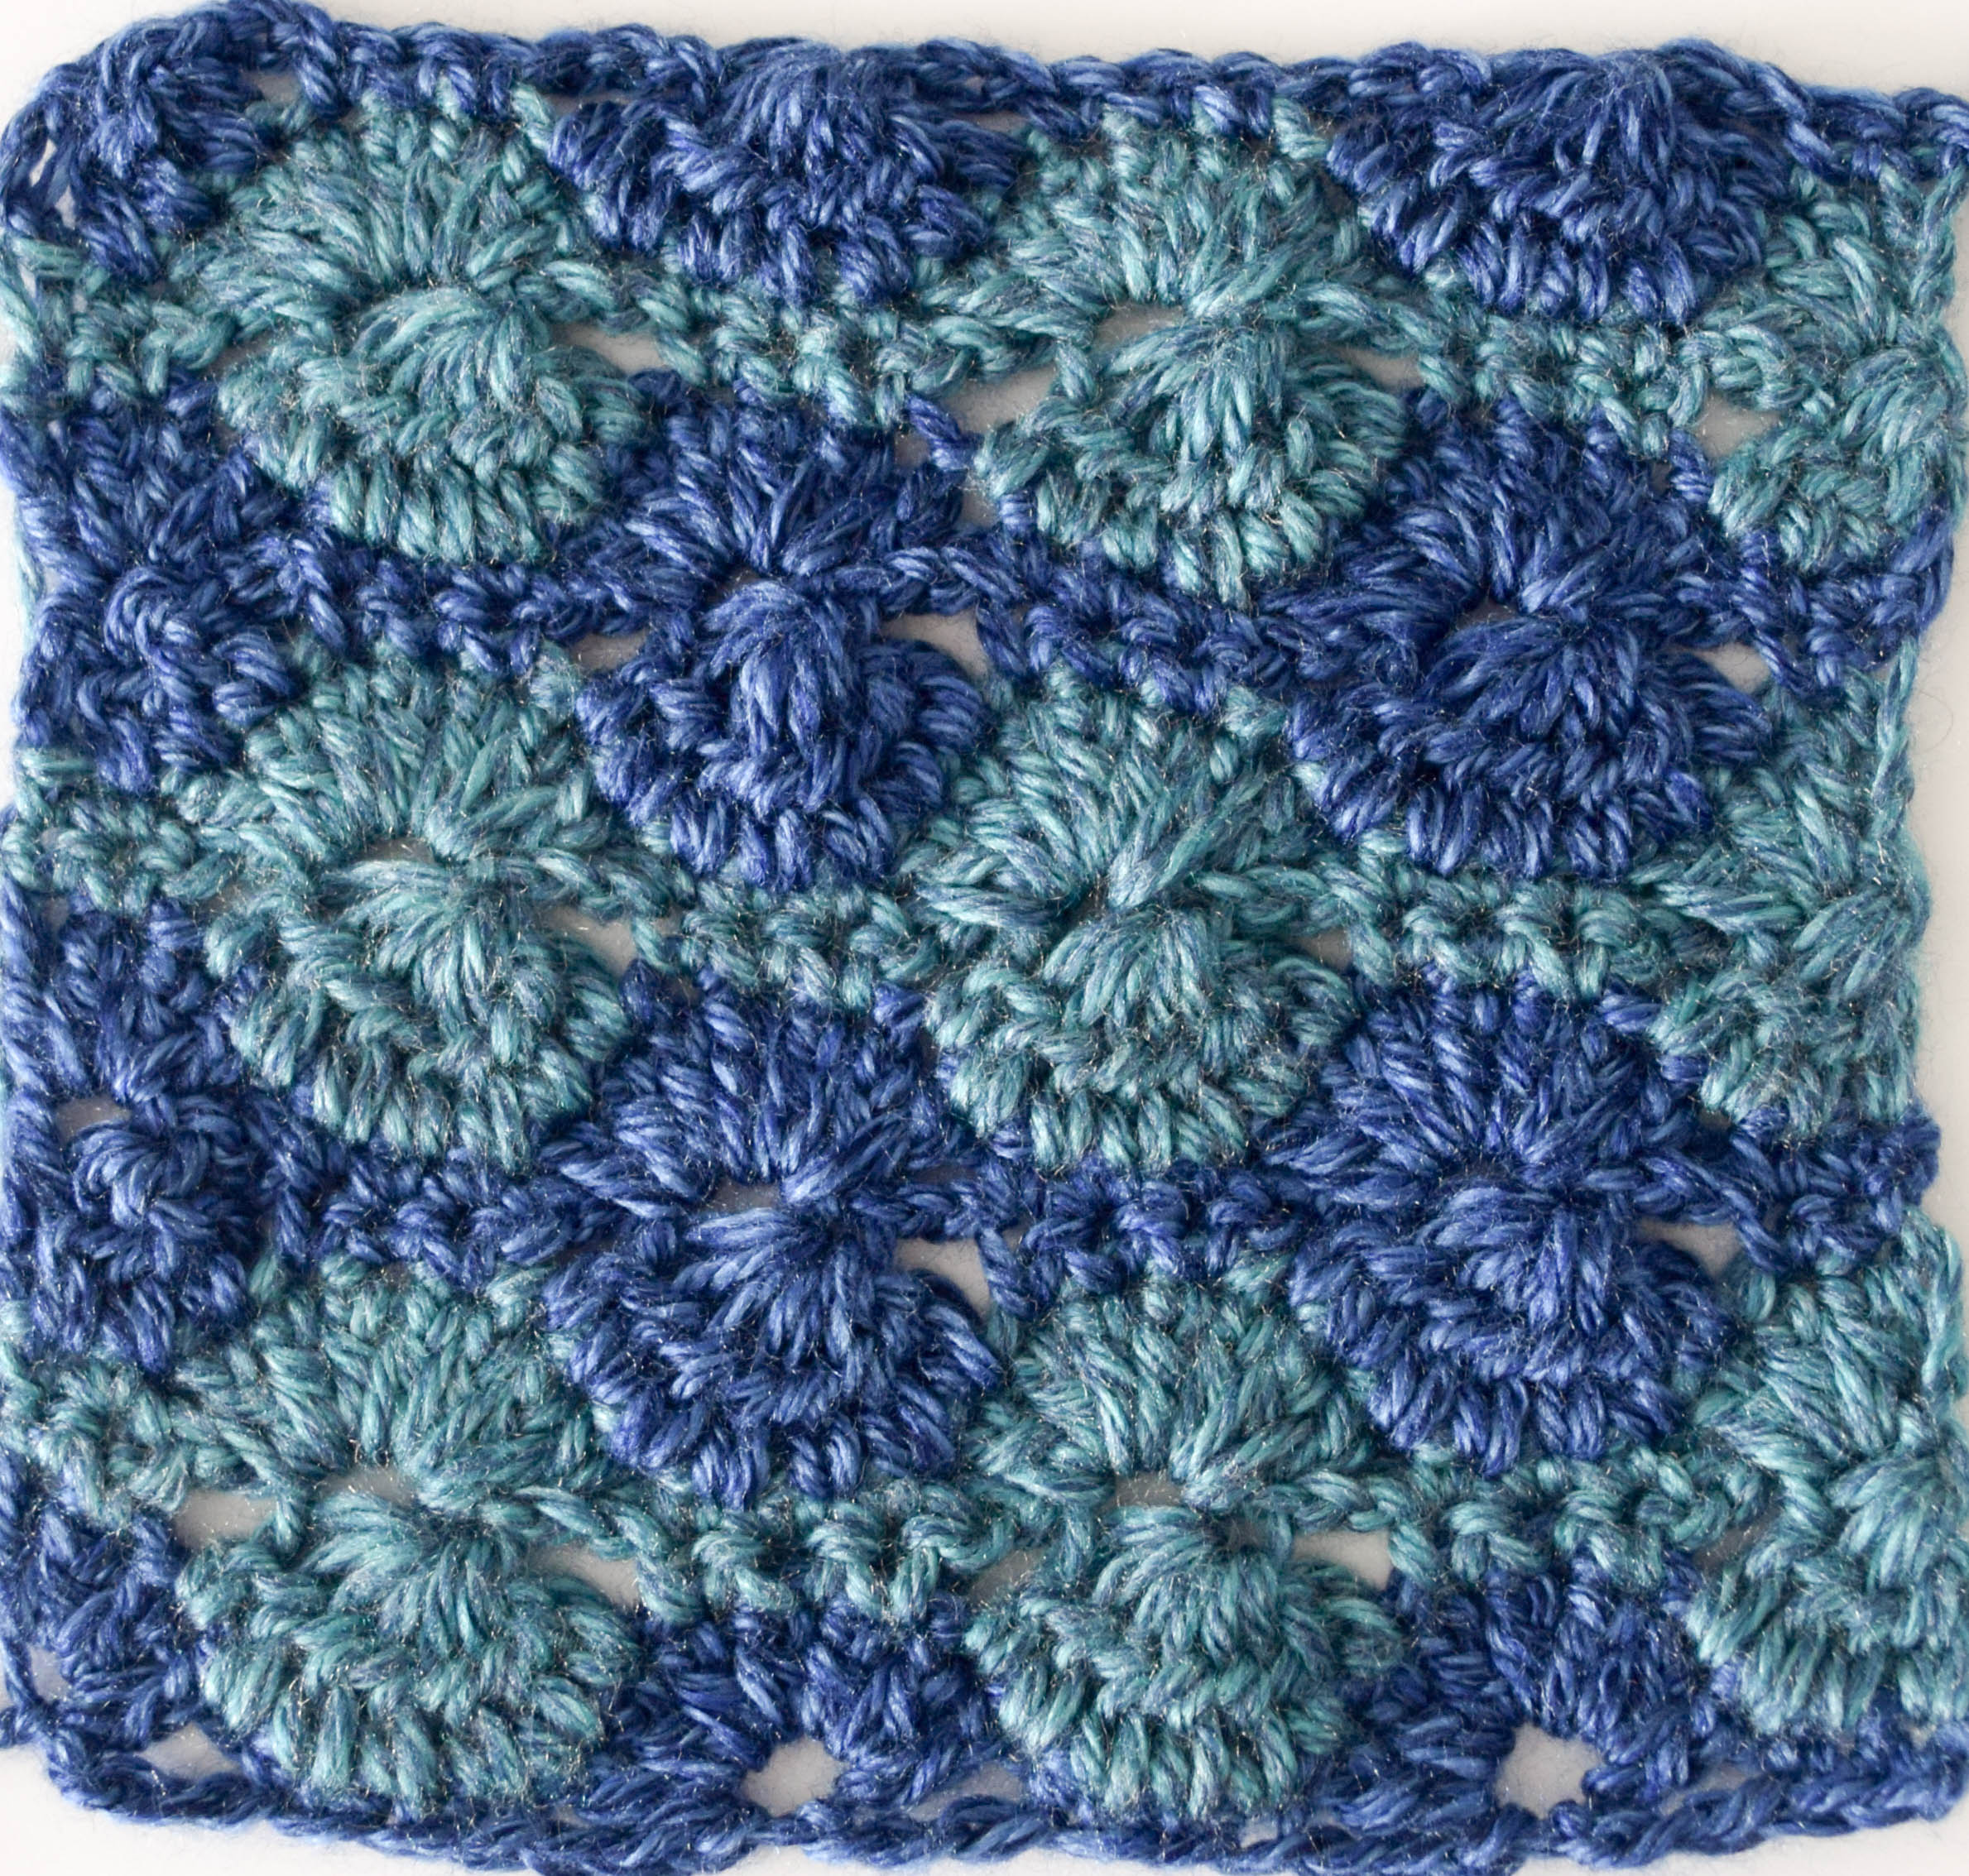 Catherine Wheel #crochet stitch pattern and #tutorial by @ucrafter for @allfreecrochet